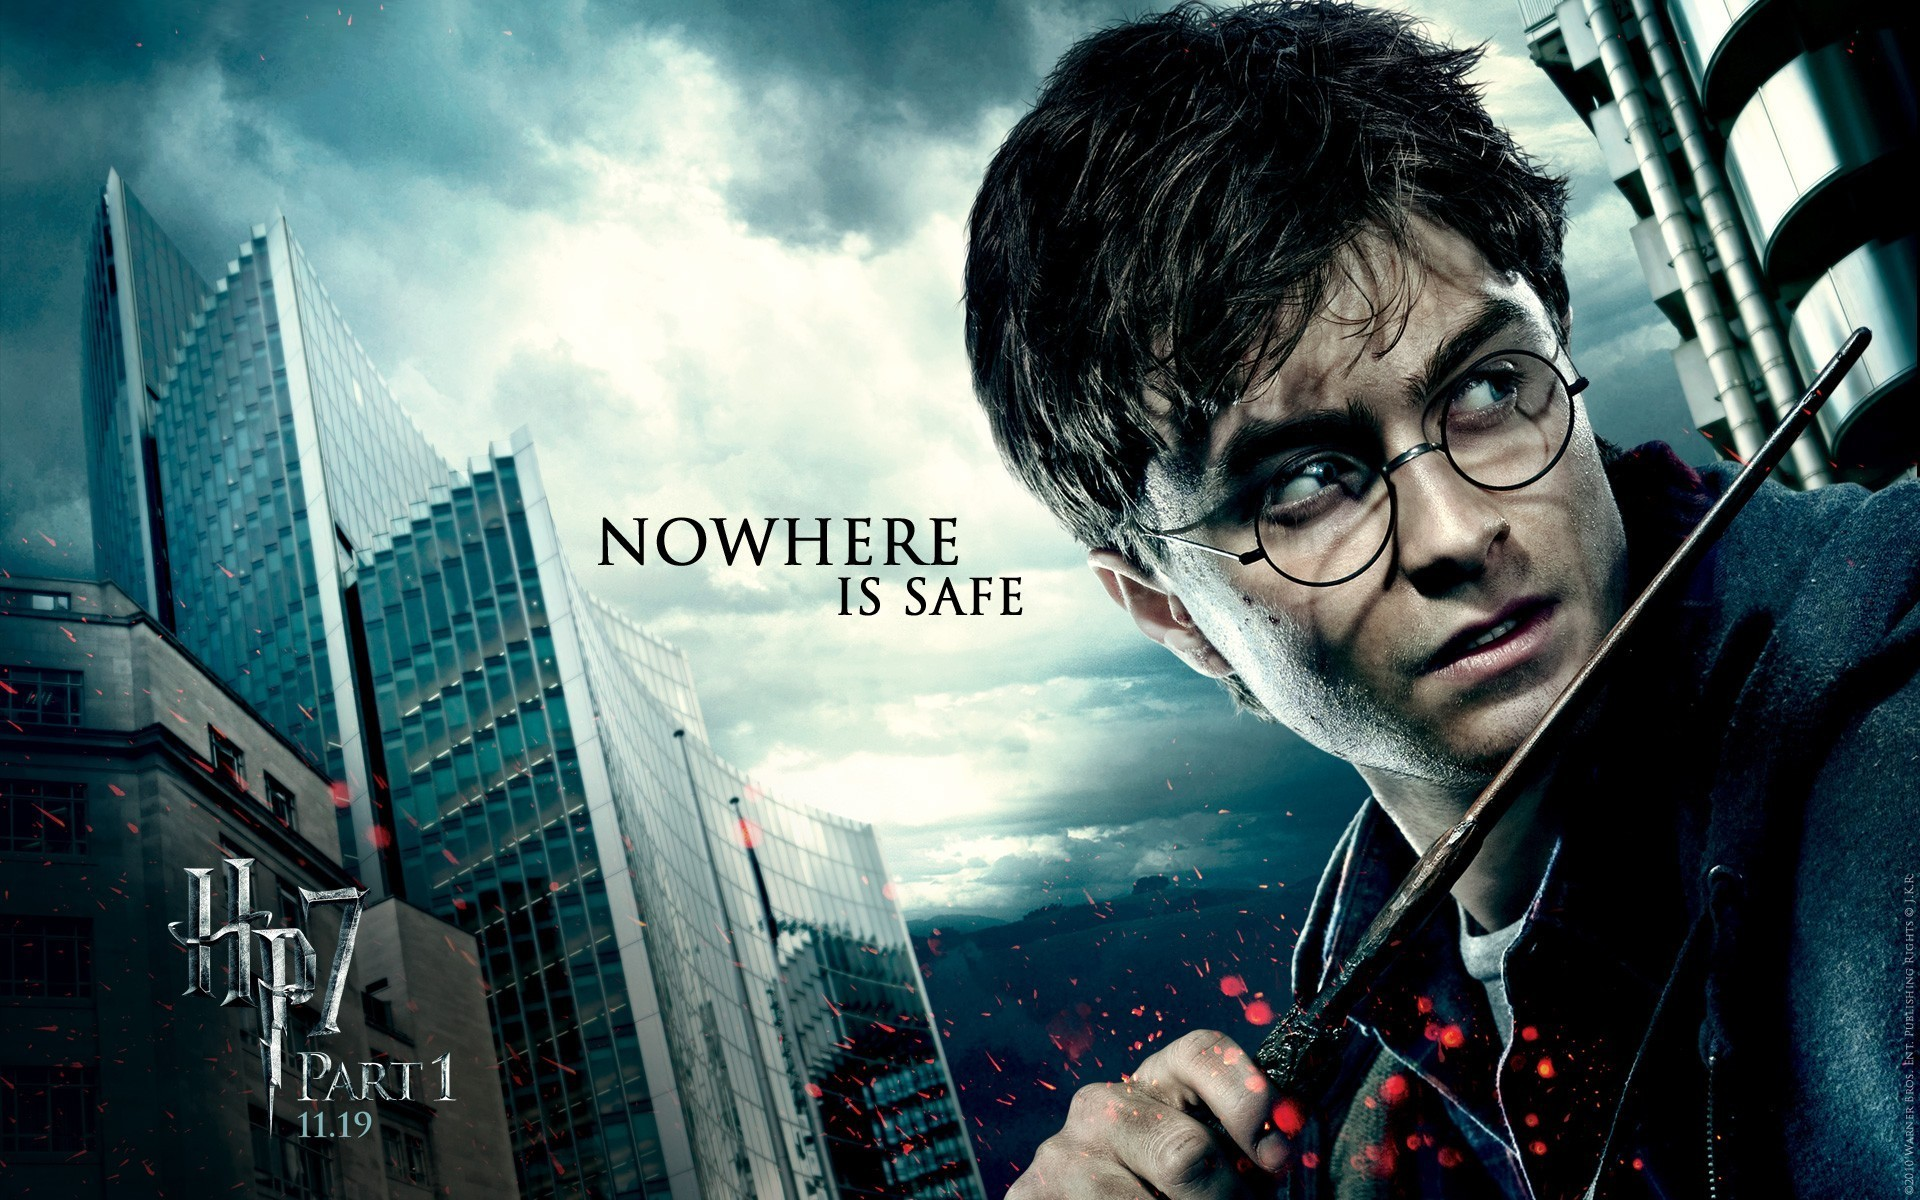 Cutest Harry Potter Images Free Download HD Wallpapers For Pc 1366×768 High  Res Wallpaper